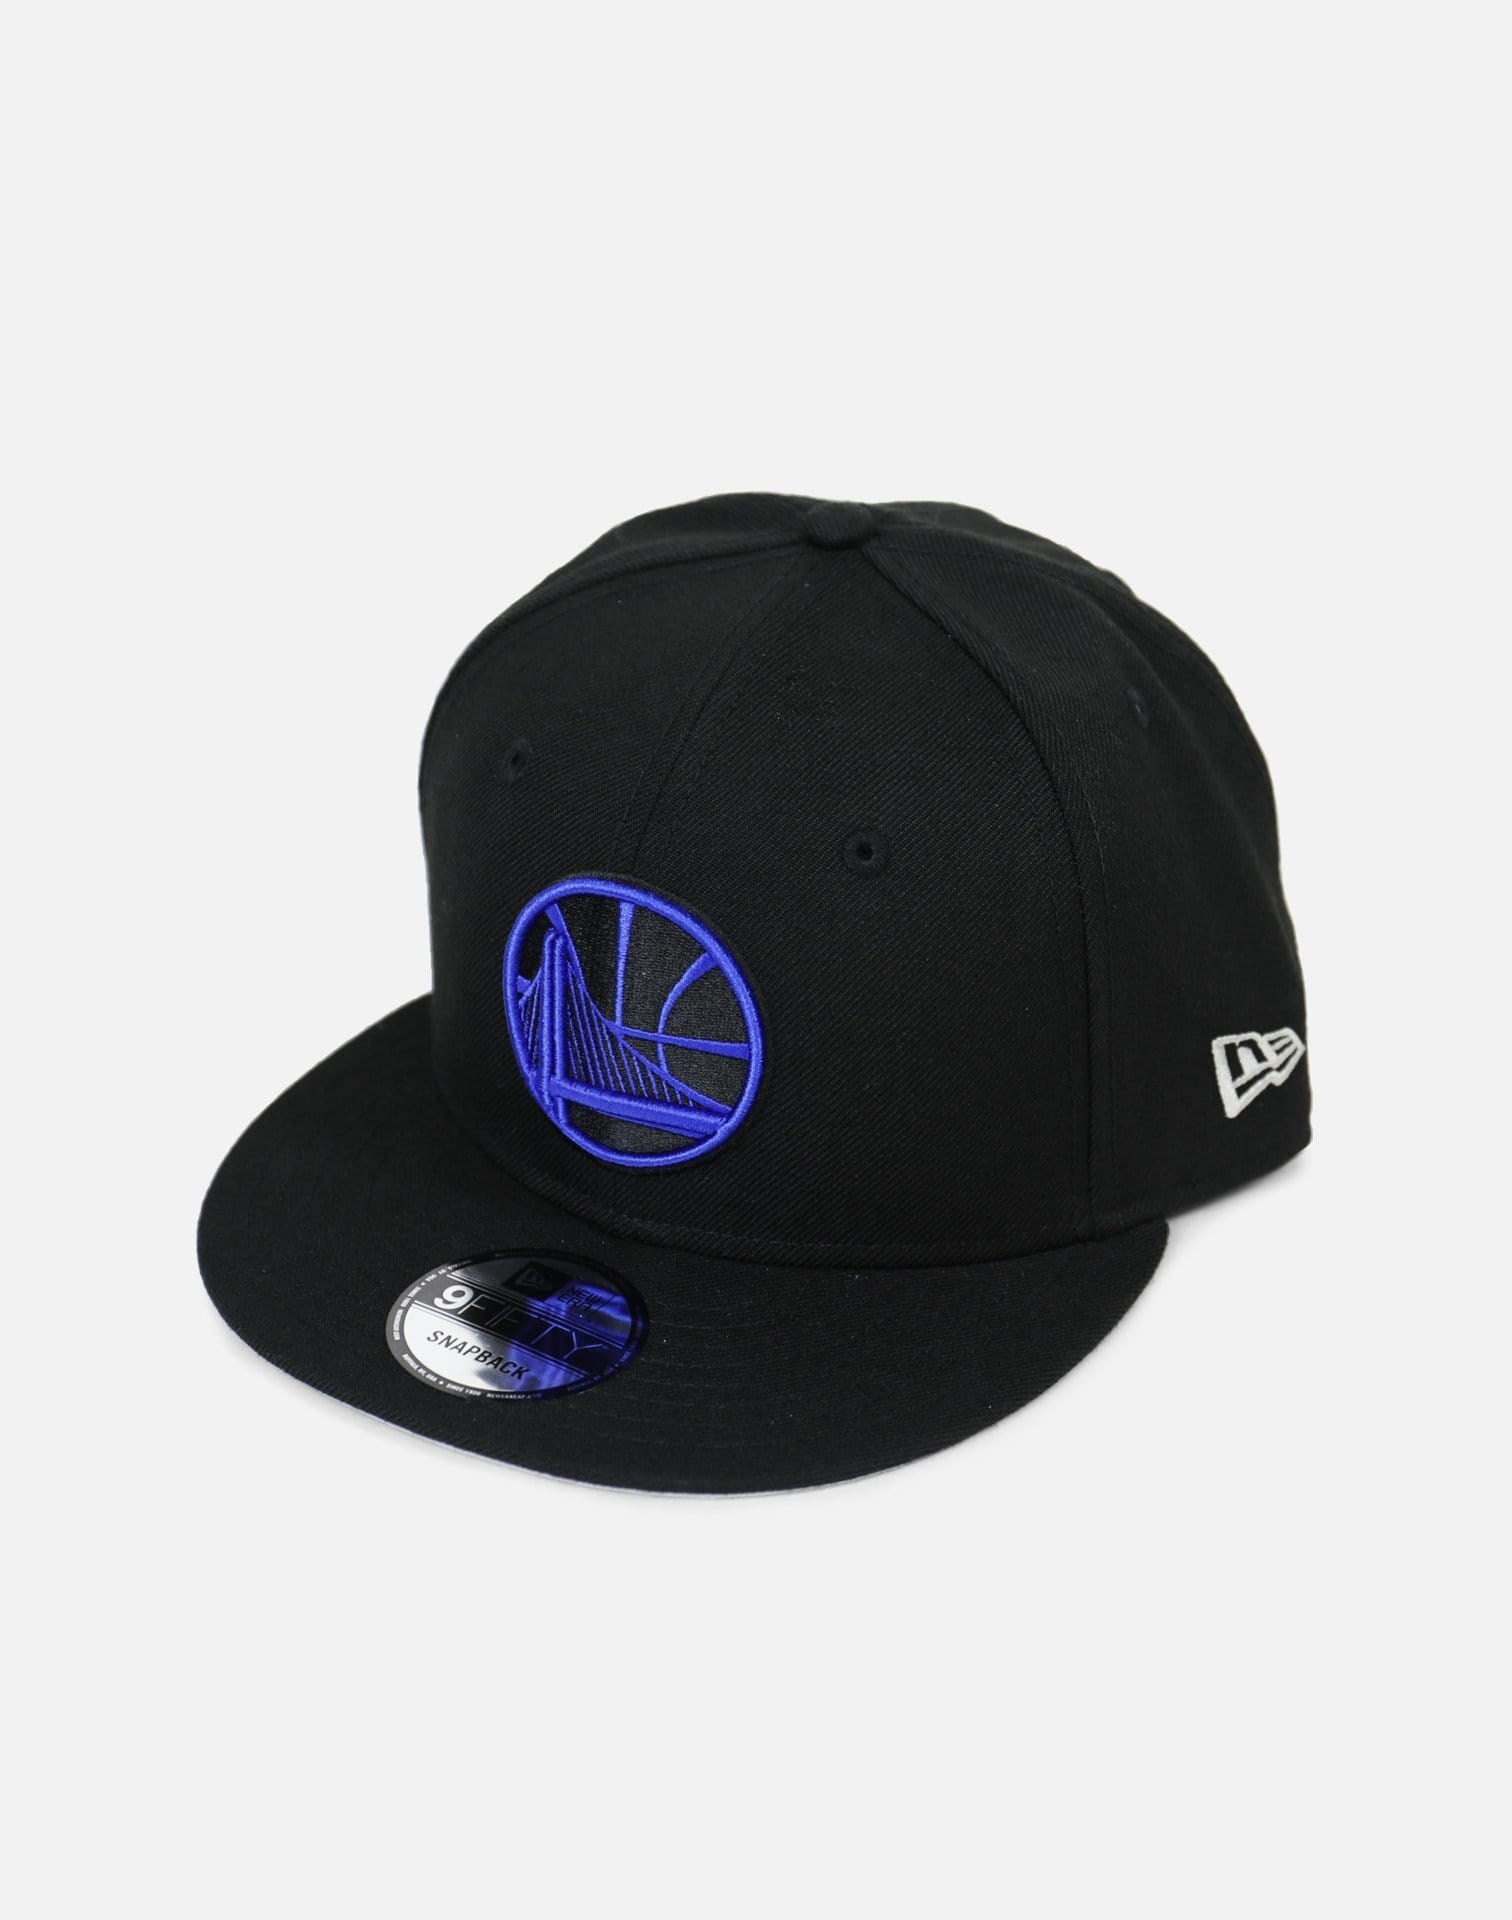 New Era Golden State Warriors Royal Hook Snapback Hat (Black/Blue)